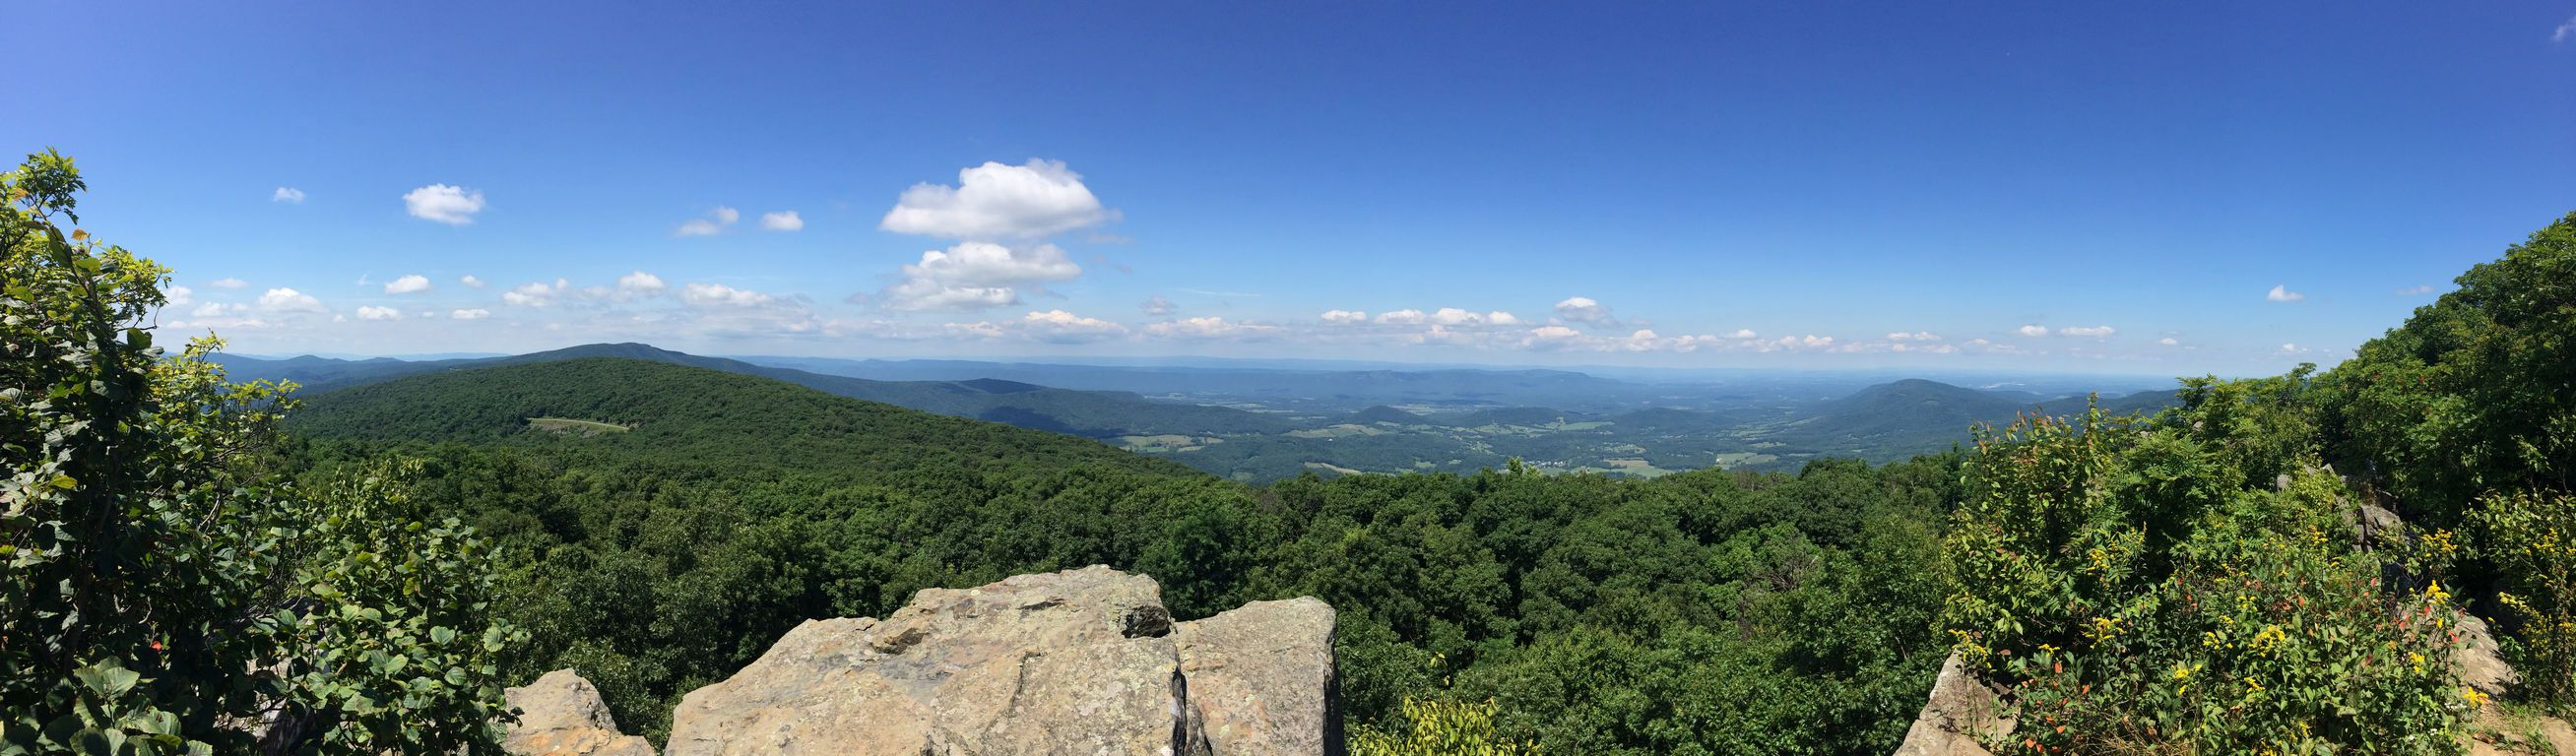 Shenandoah: Marshall Summit North and South